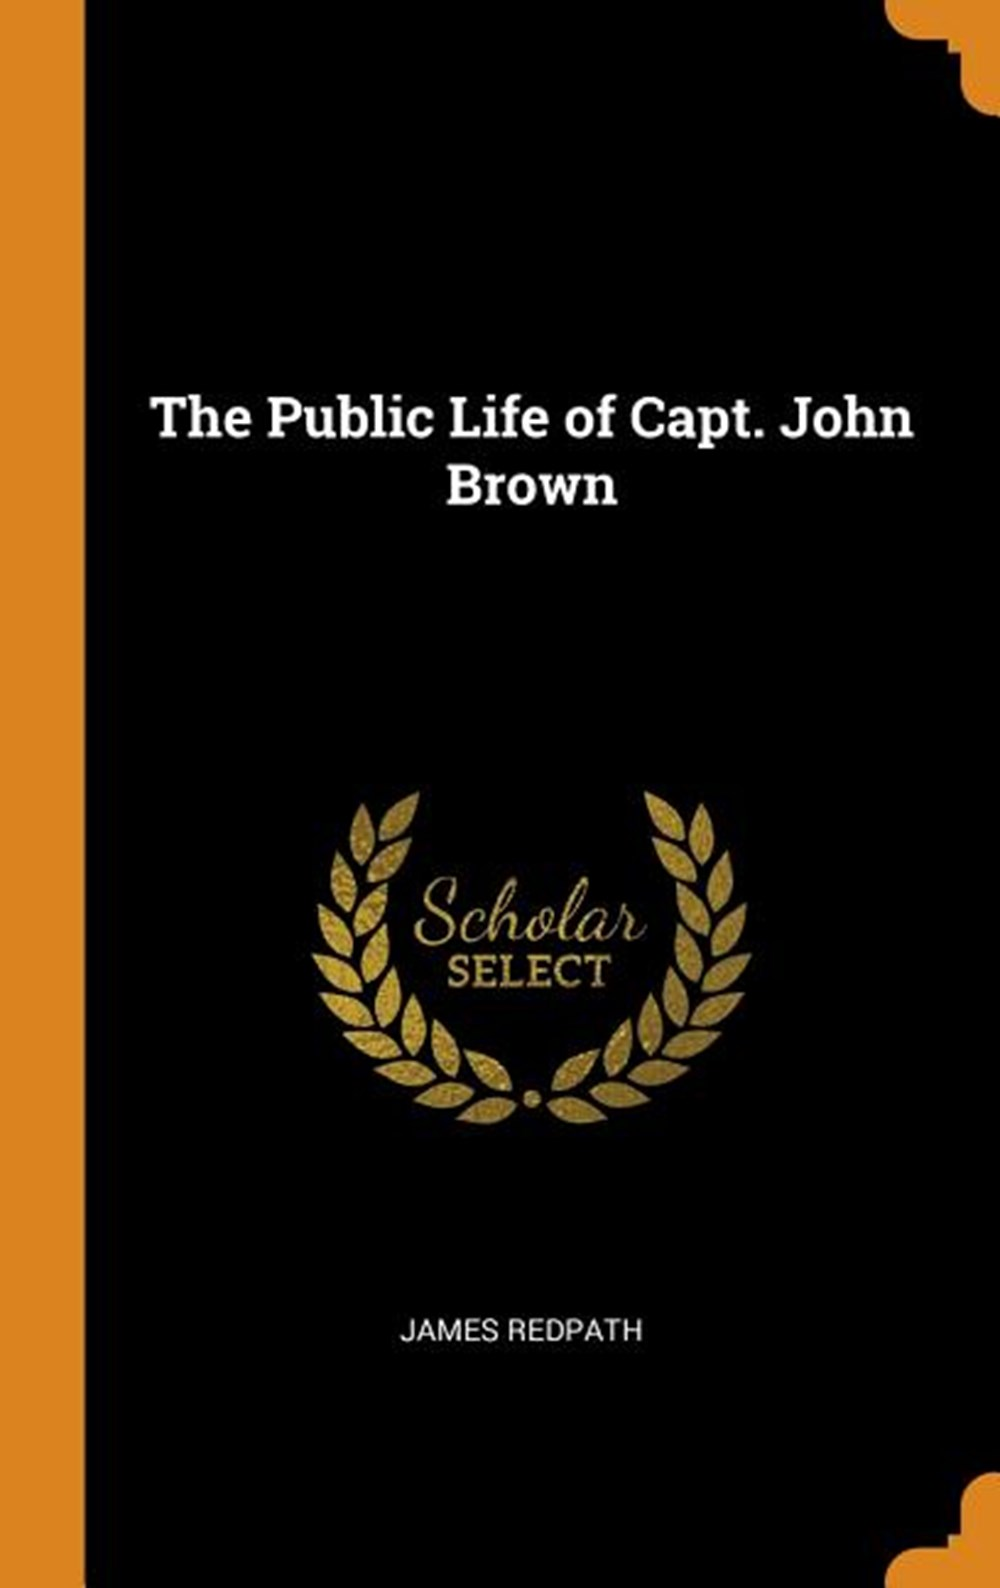 Public Life of Capt. John Brown